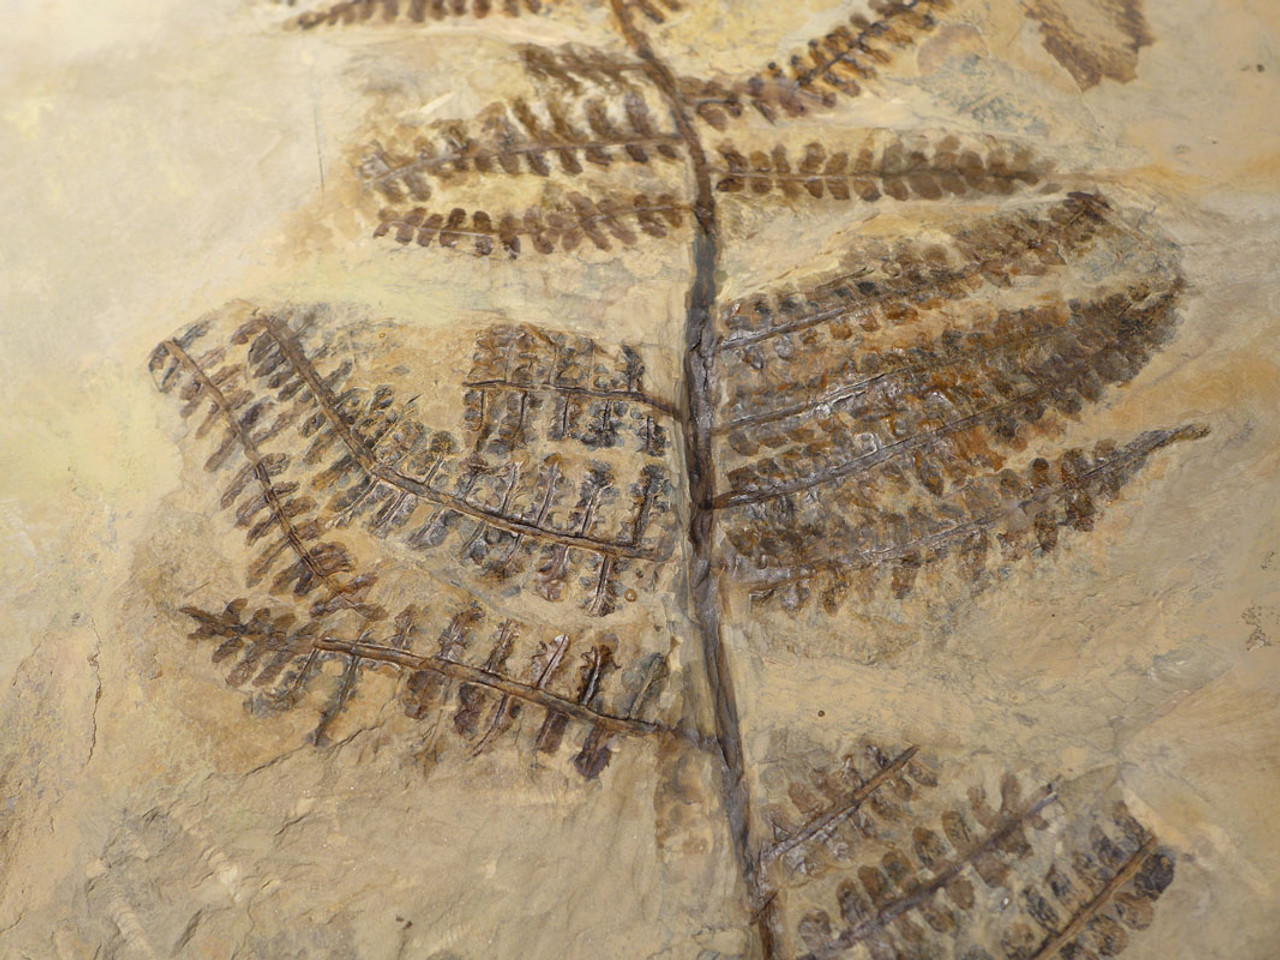 PLXF001 - SUPER RARE GIANT PECOPTERIS TREE FERN FOSSIL FROM THE PERMIAN PERIOD